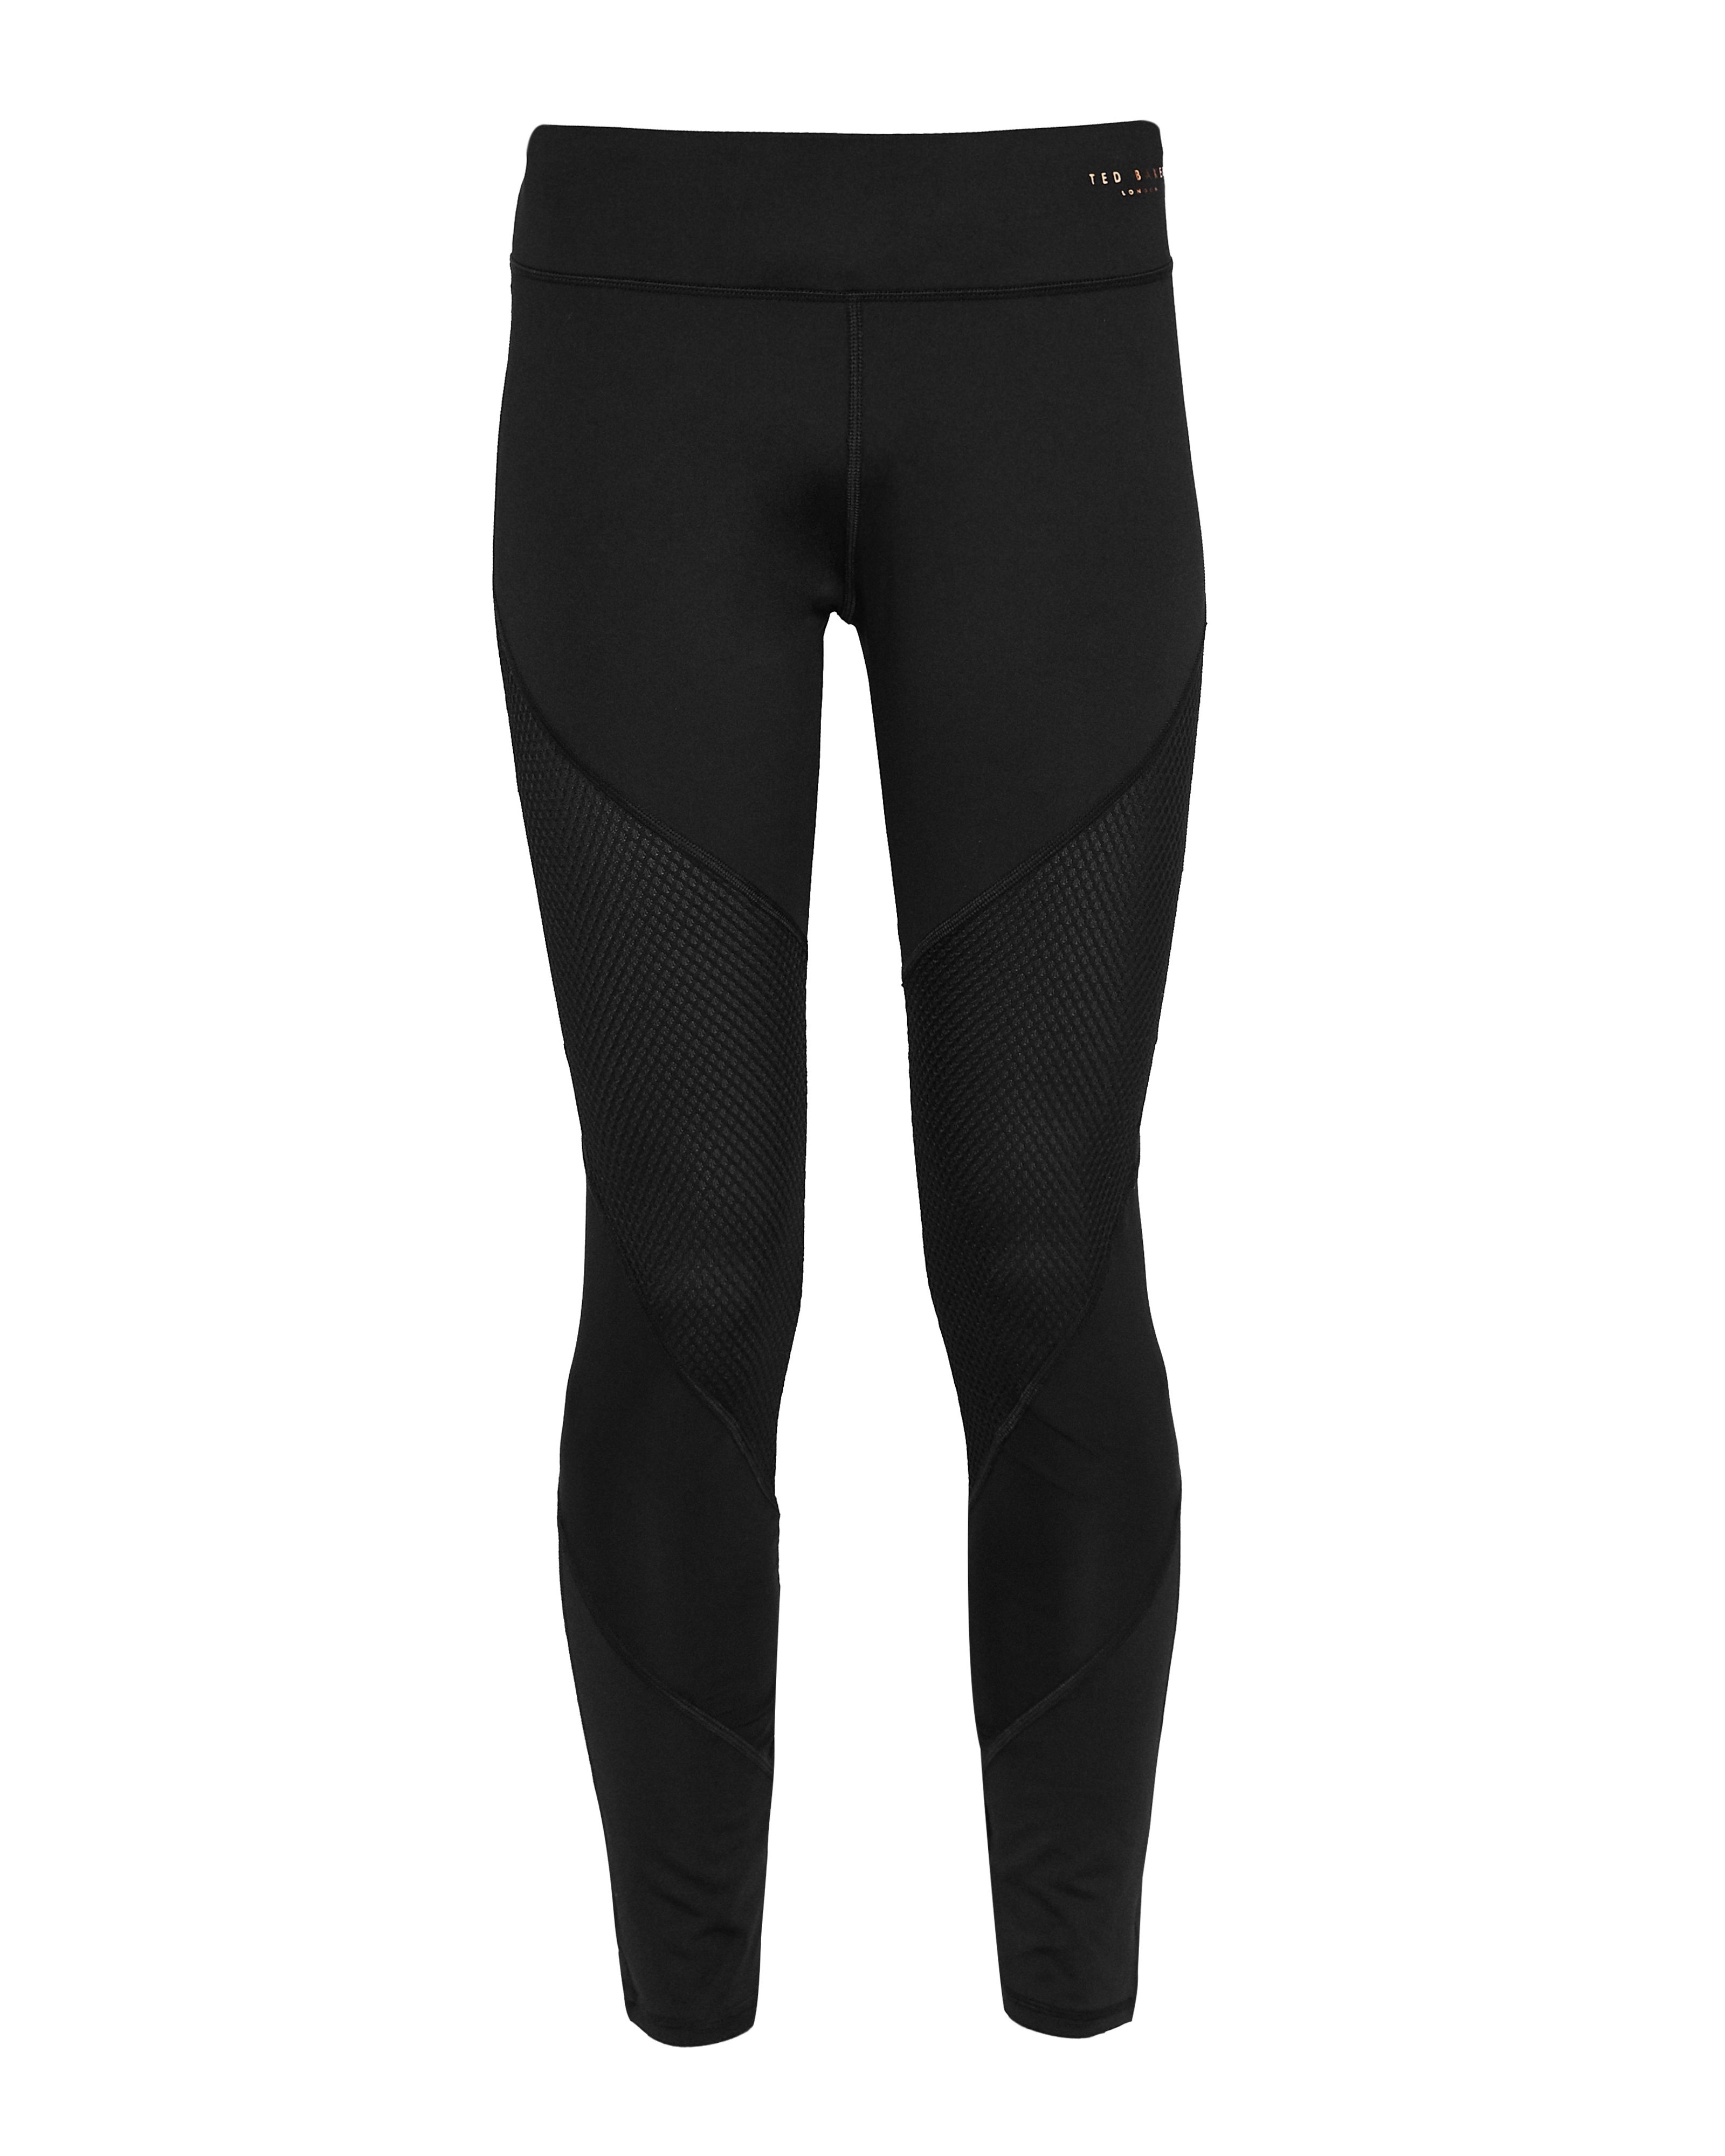 Ted Baker Atcro Mesh Cut Out Leggings, Black